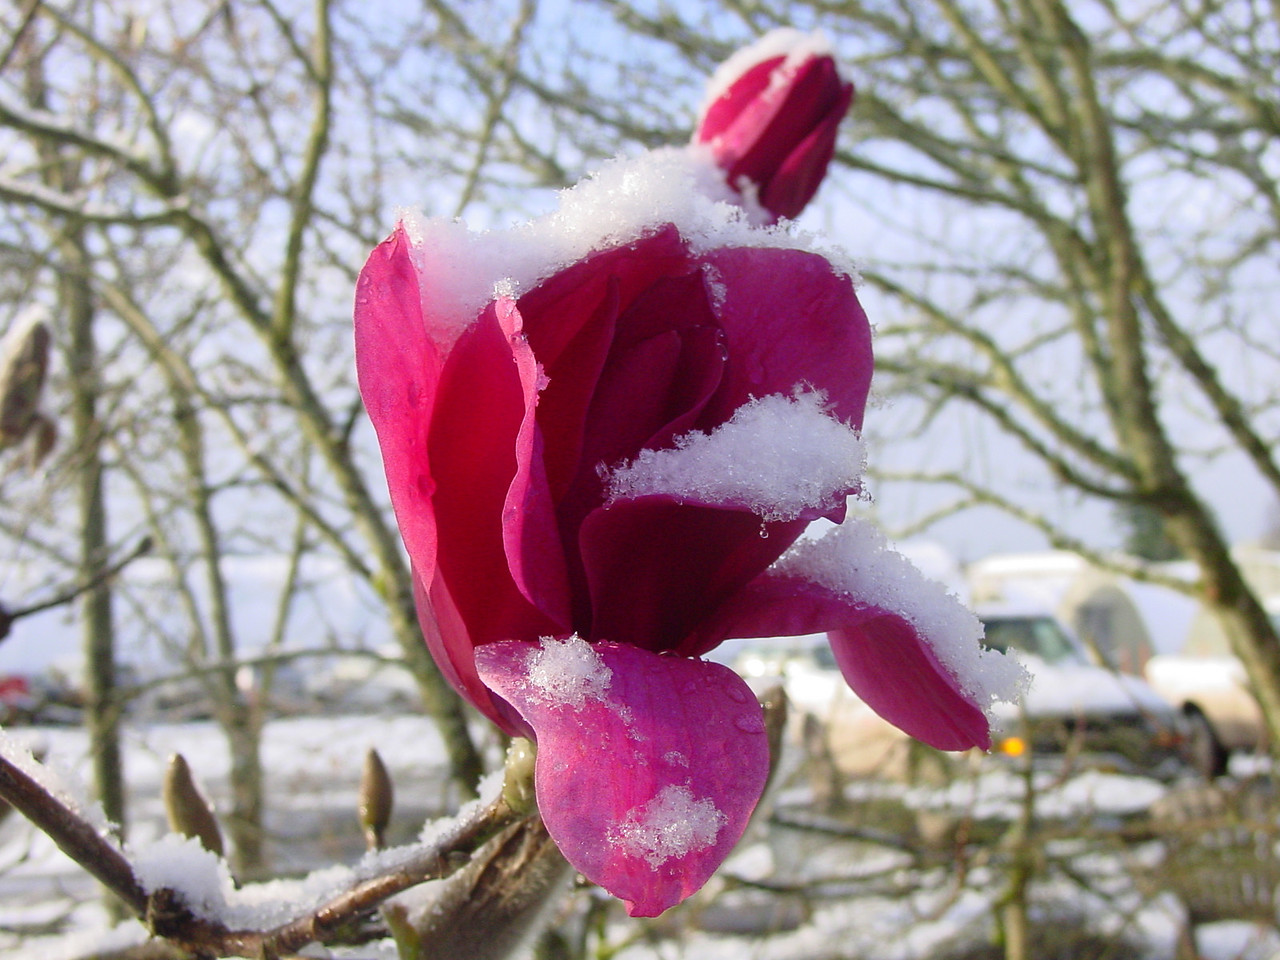 Magnolia 'Vulcan' with a dusting of snow - March 27th 2008.